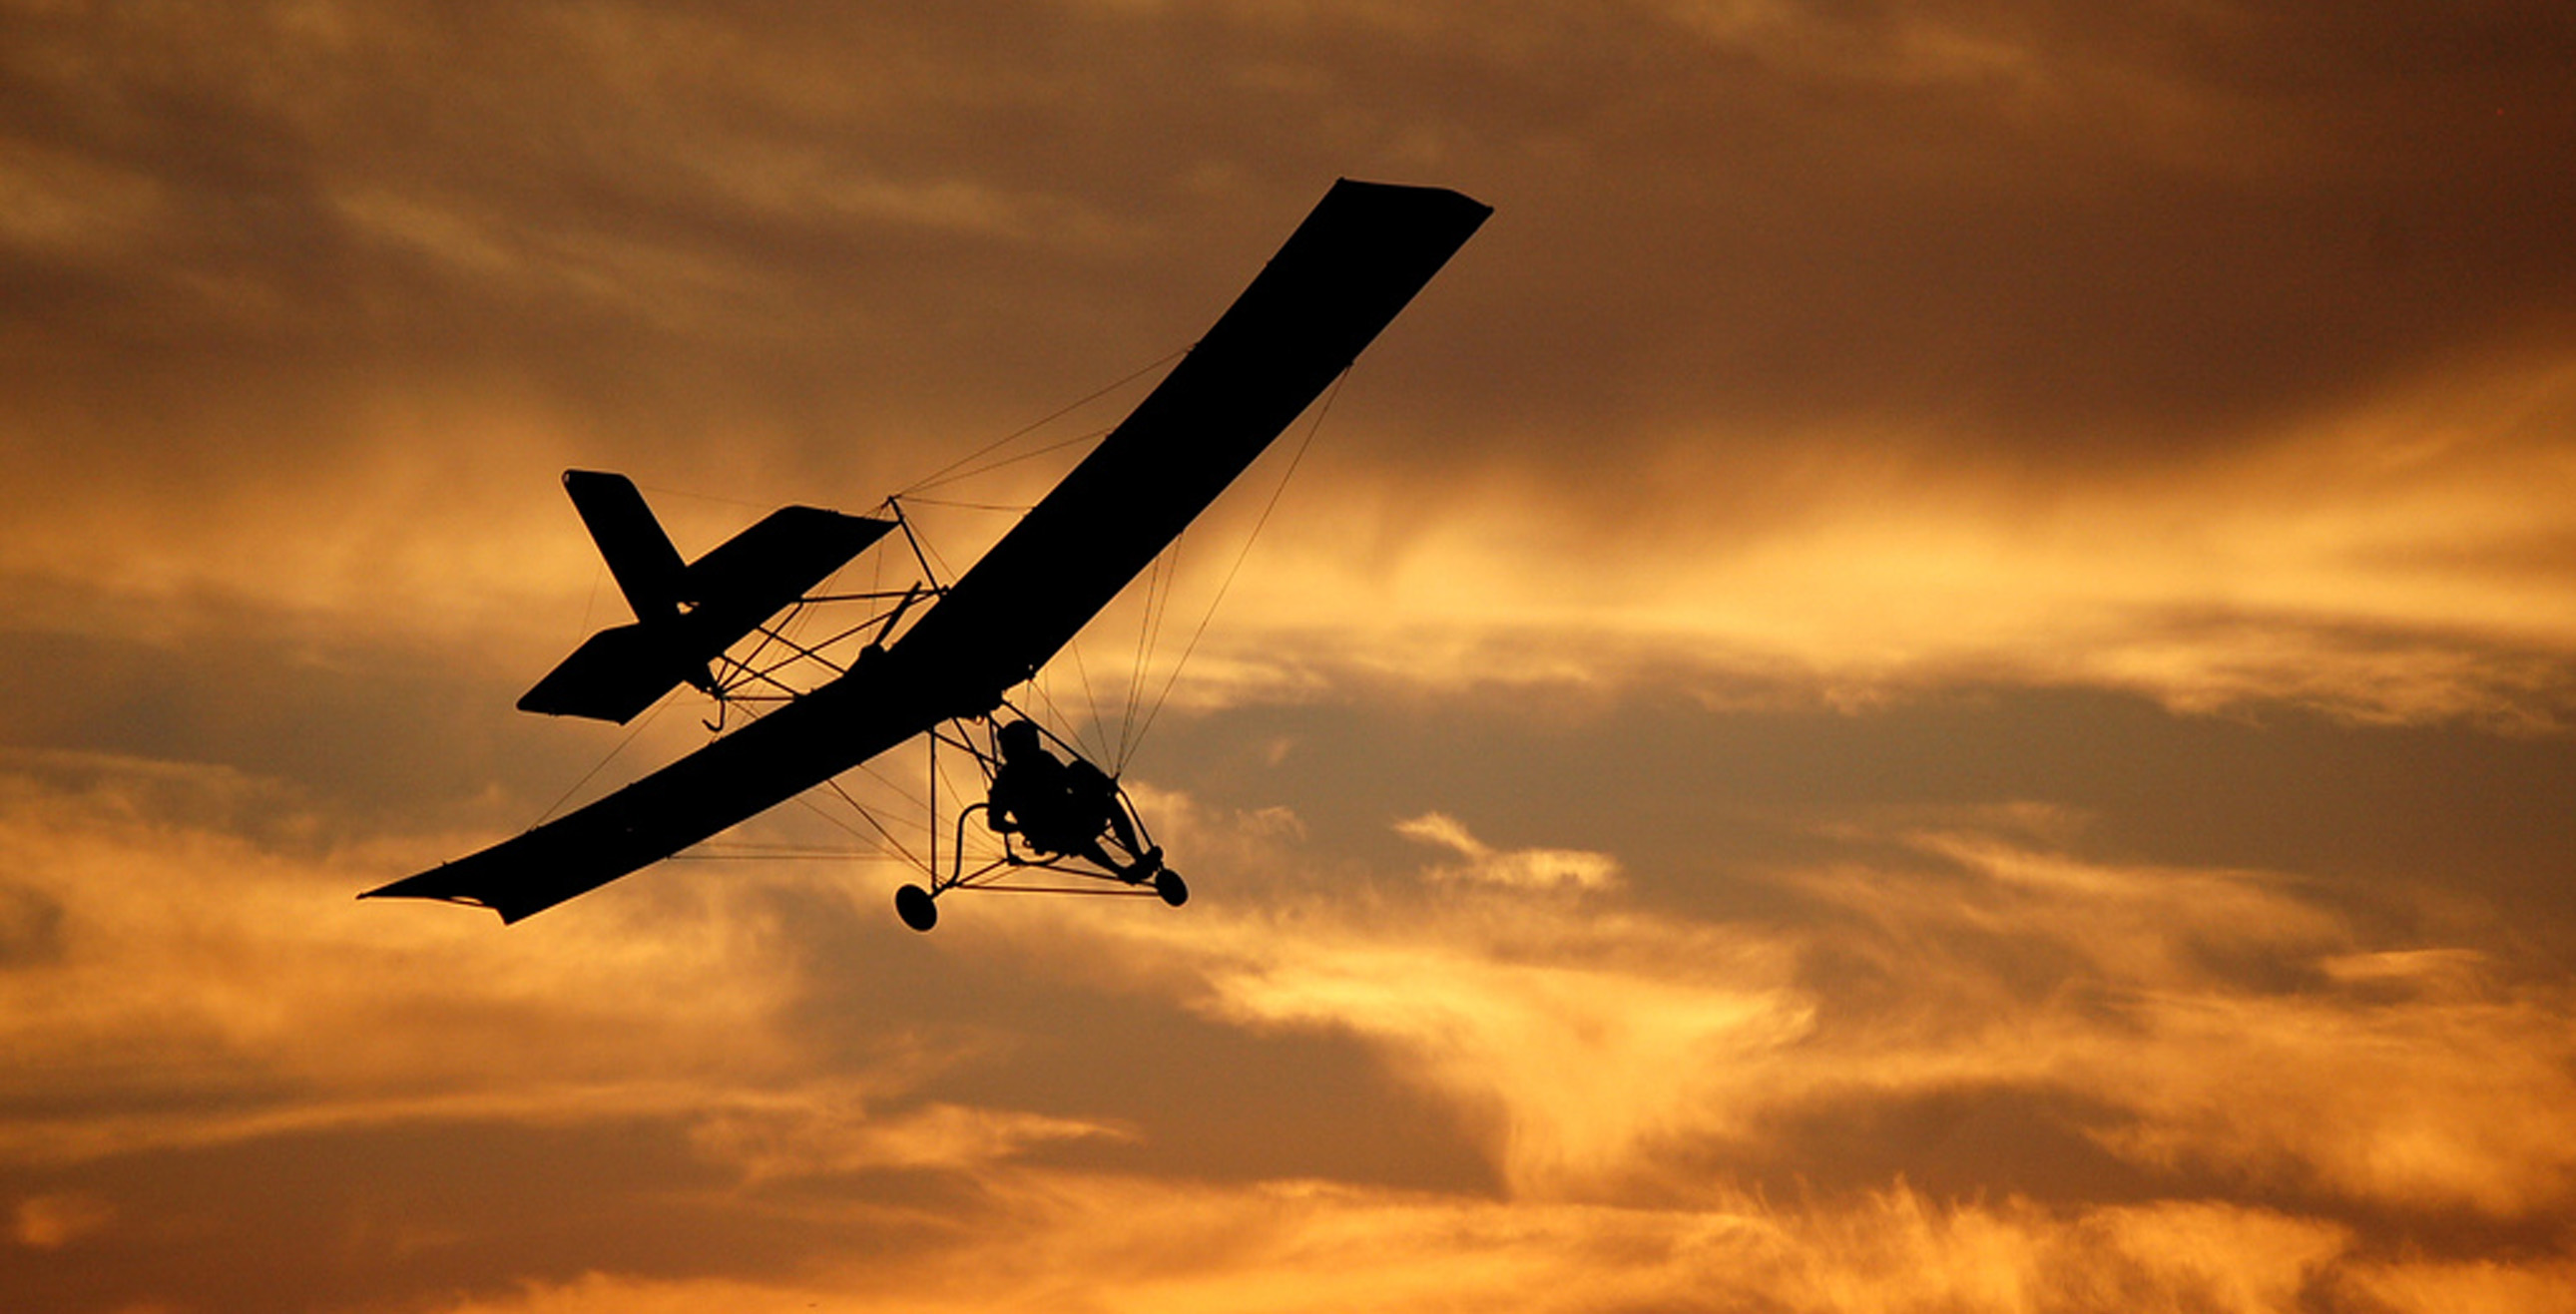 Microlight flying at Sunset - Brown Shutters Farm Airfield